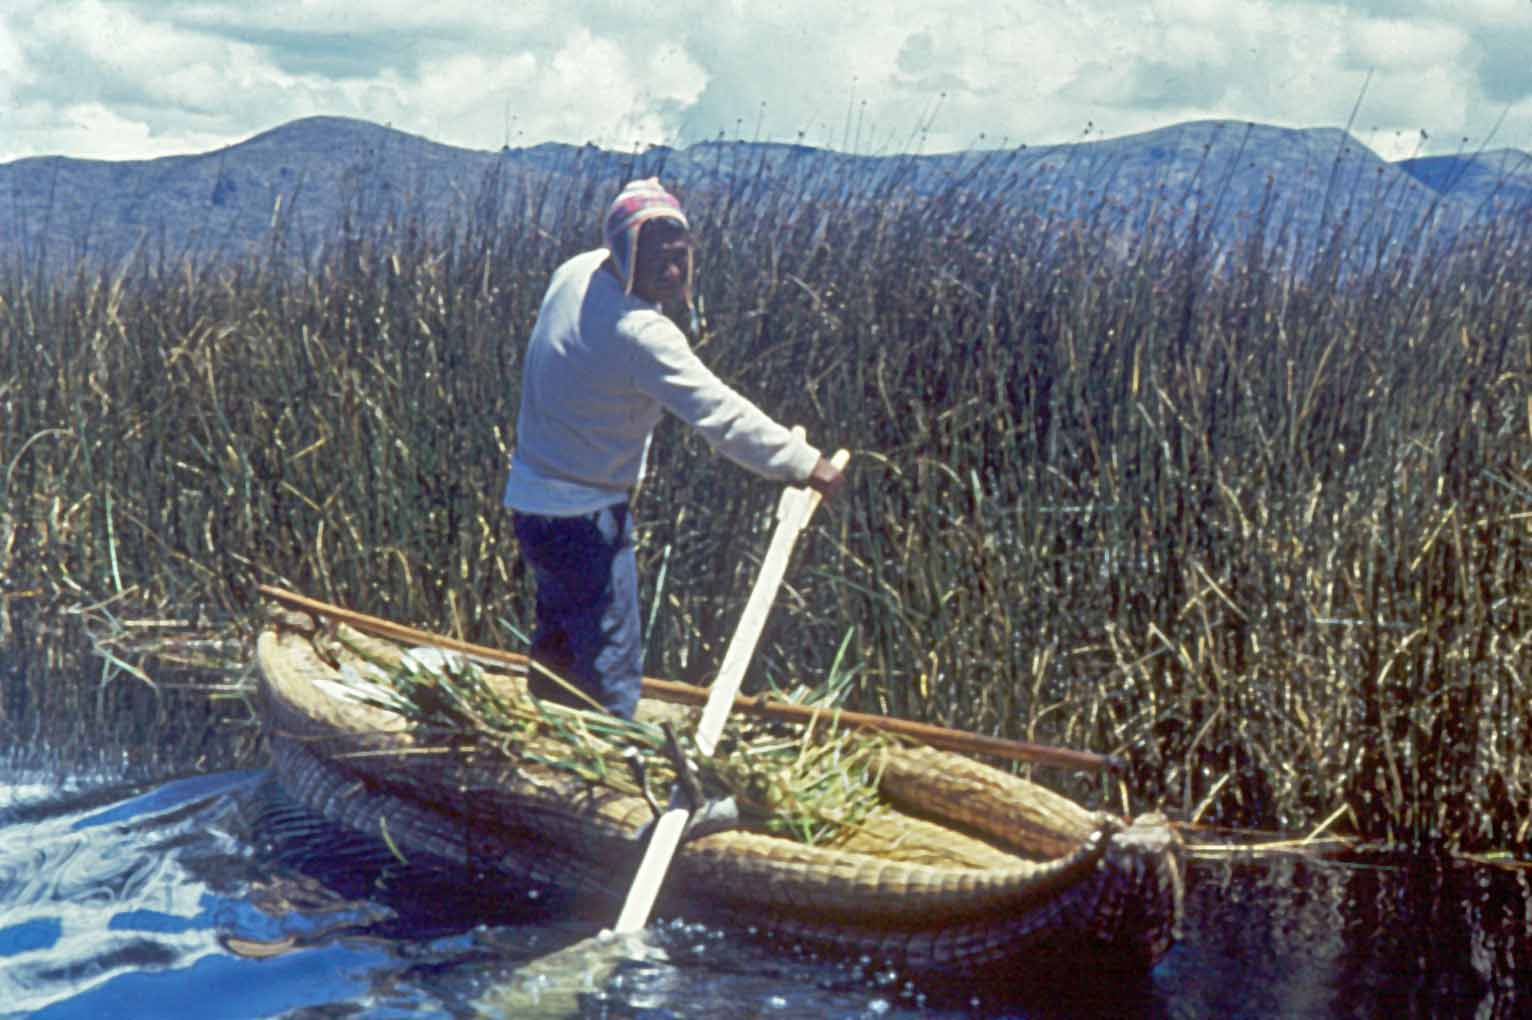 Peru - Page 2 Uros_Indian_in_a_reed_boat_Lake_Titicaca_Peru_low_res_copy